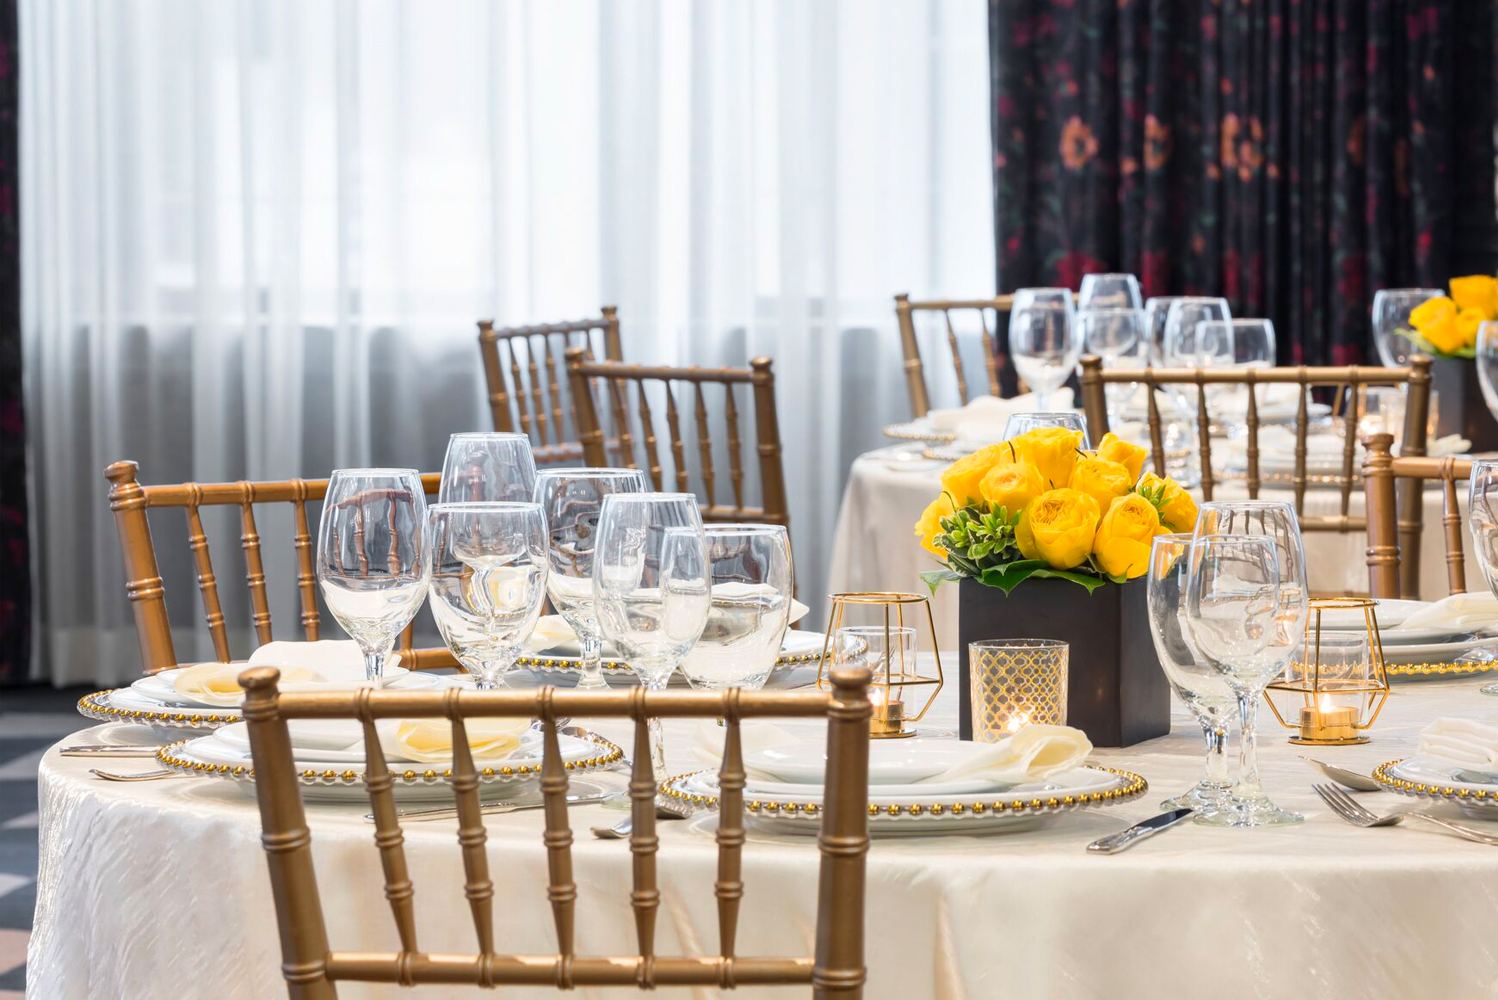 For events, the property has 6,000 square feet of function space, including a grand ballroom. The hotel can accommodate groups of up to 300 people.